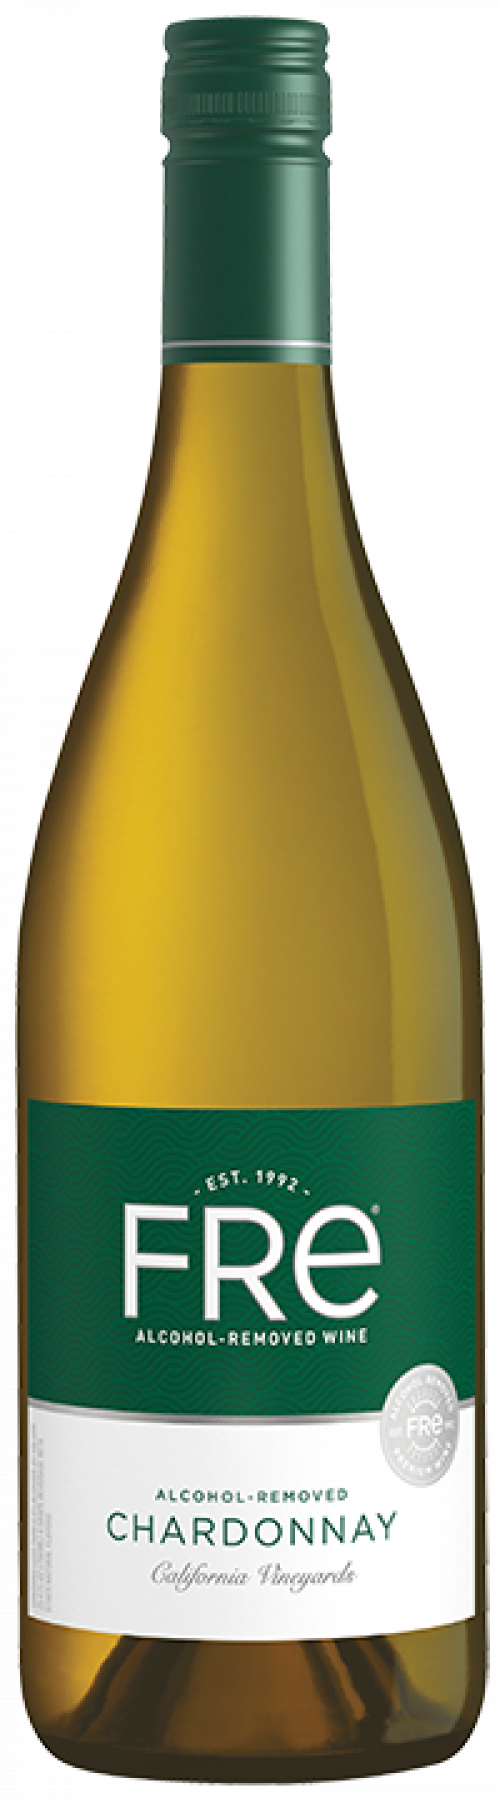 Sutter Home Fre Chardonnay 750ml NV